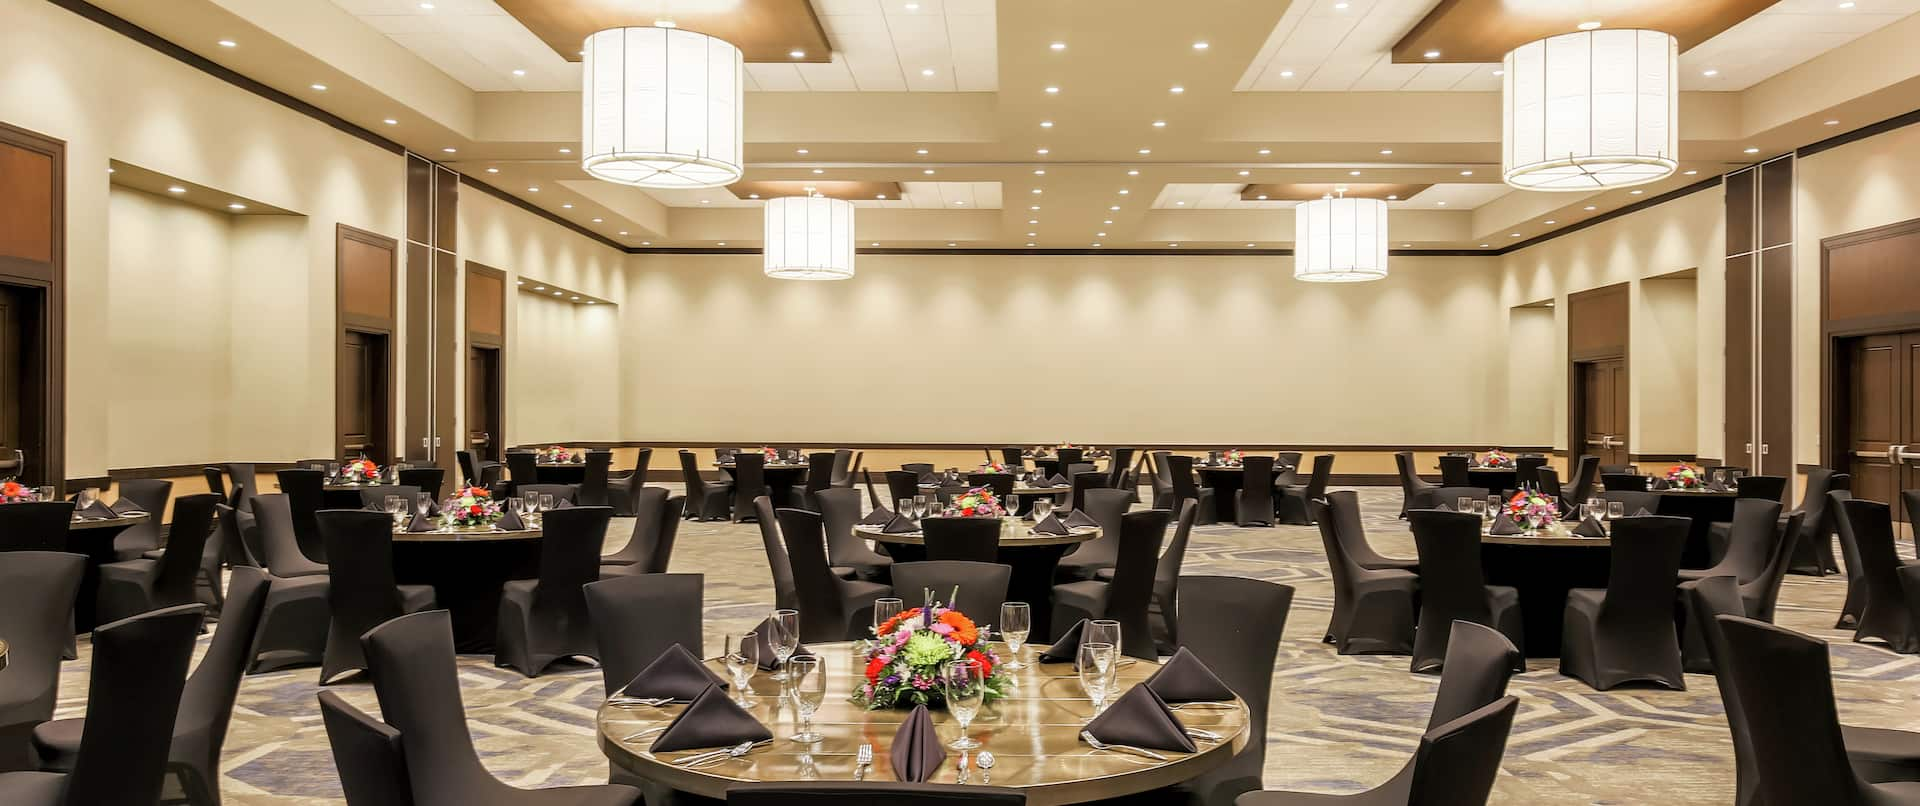 Meeting Space Set In A Luncheon Setting